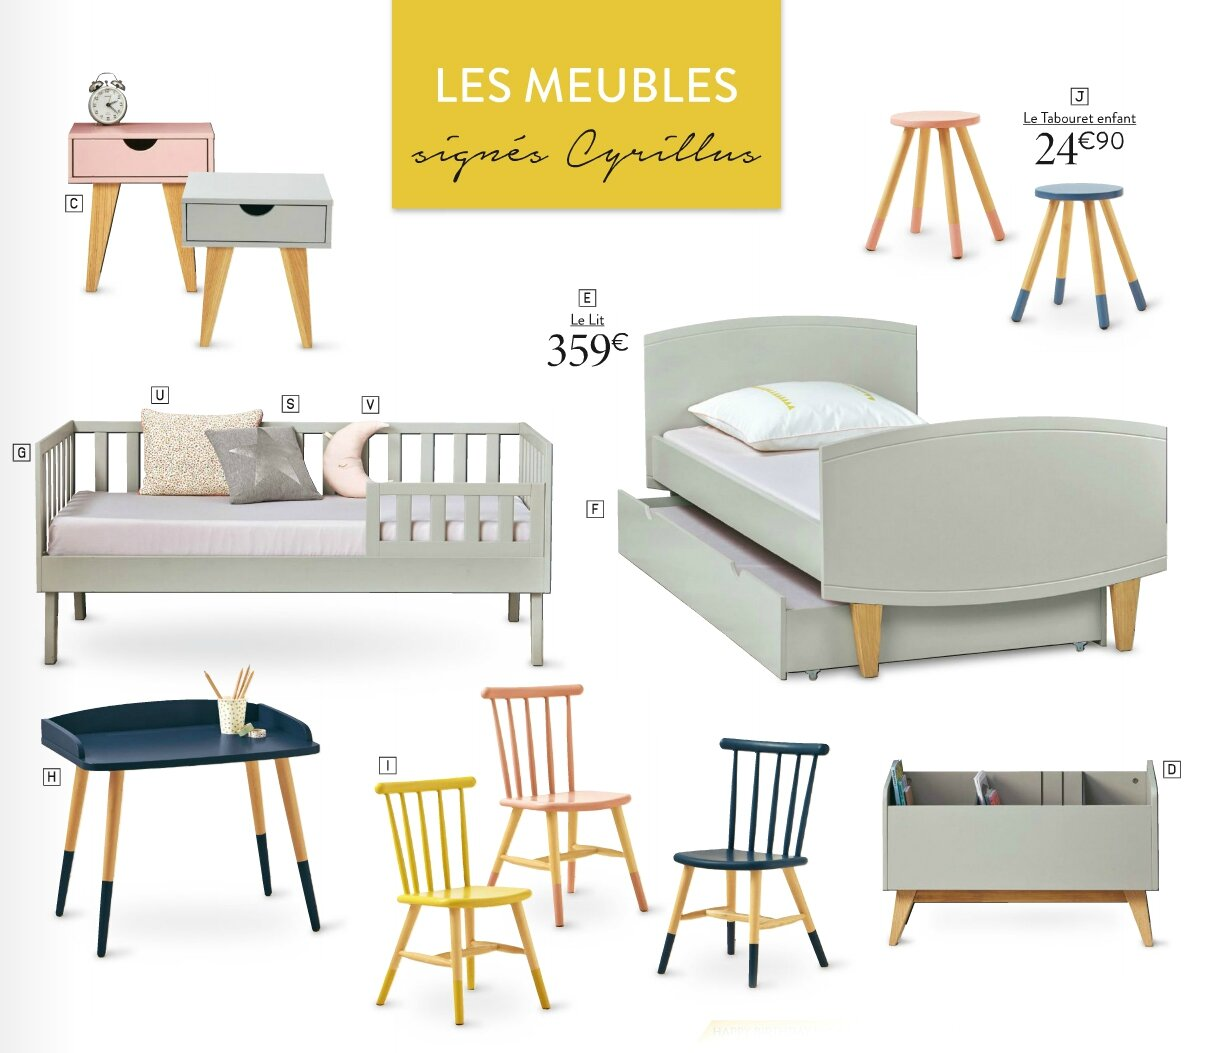 nouveau le catalogue cyrillus maison 2015 deco trendy a t e l i e r. Black Bedroom Furniture Sets. Home Design Ideas